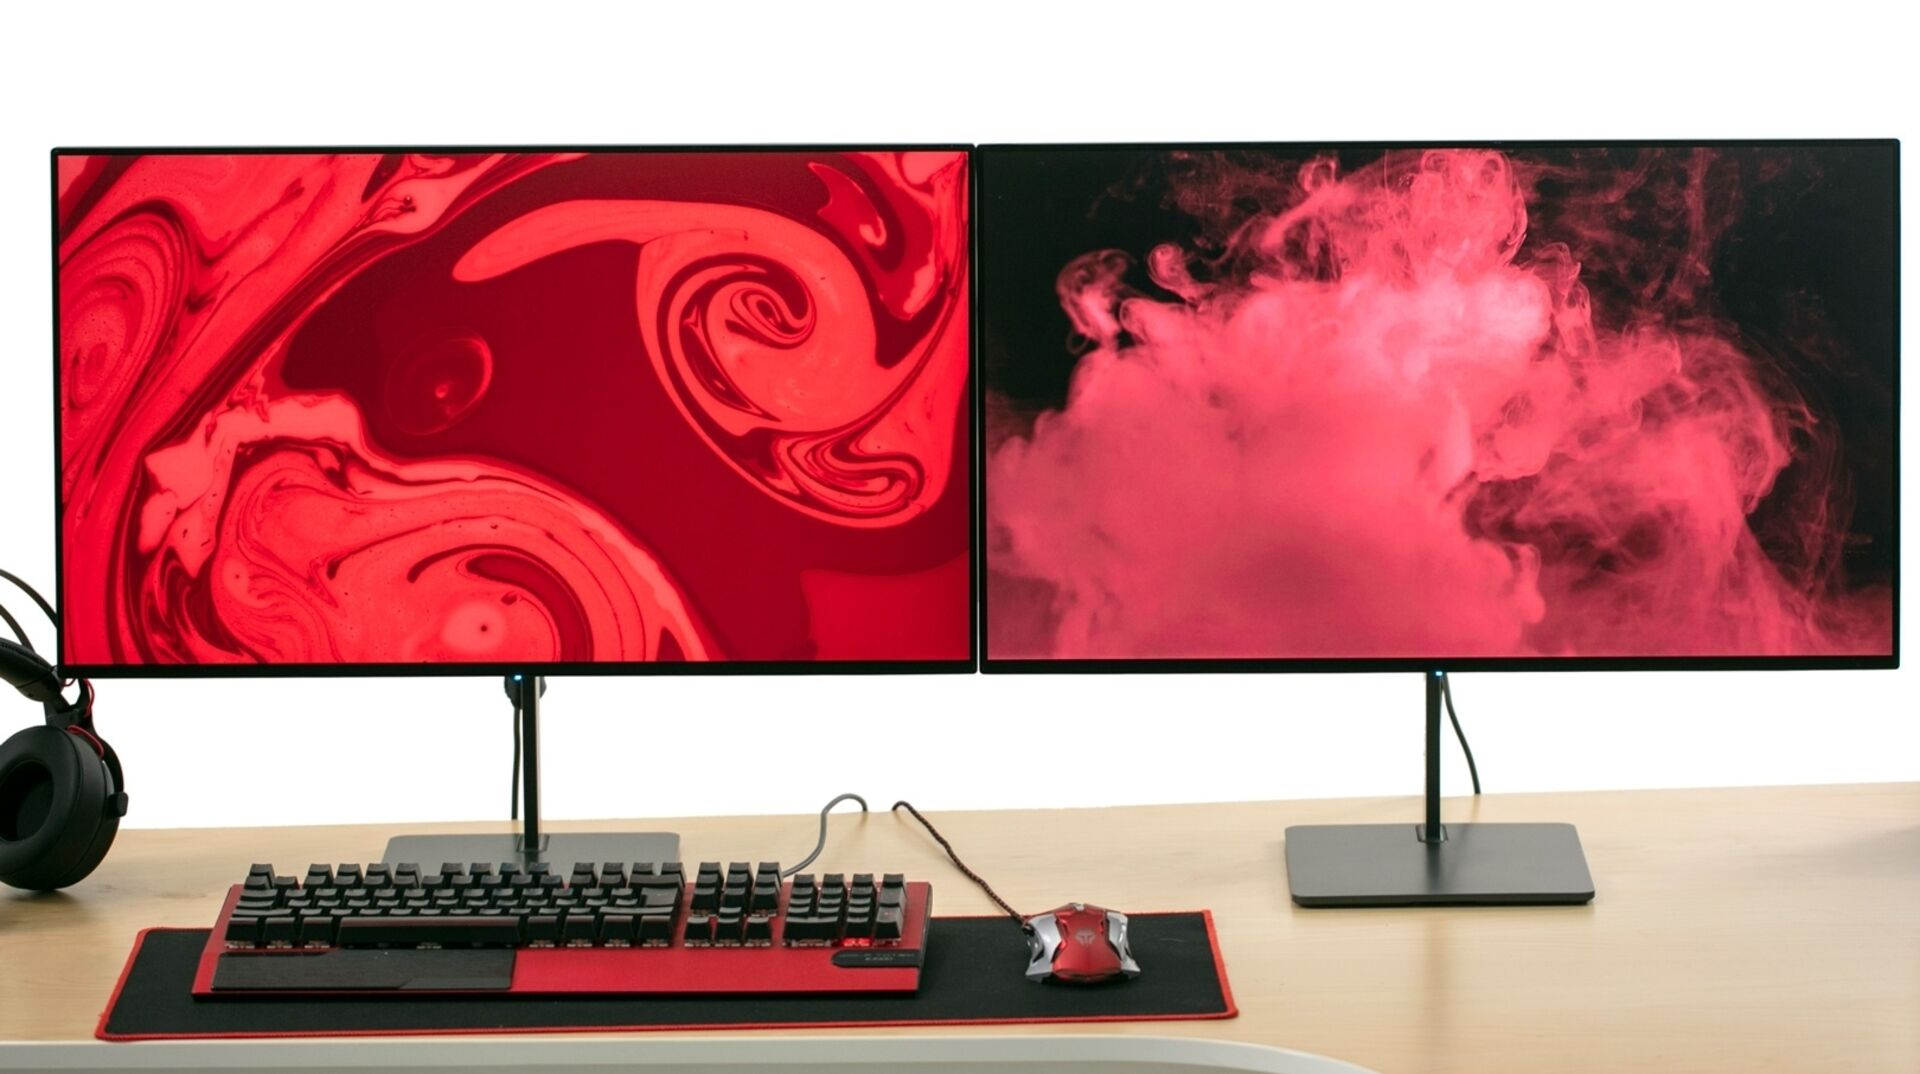 First HDMI 100.10 gaming monitor for PC and next-gen consoles